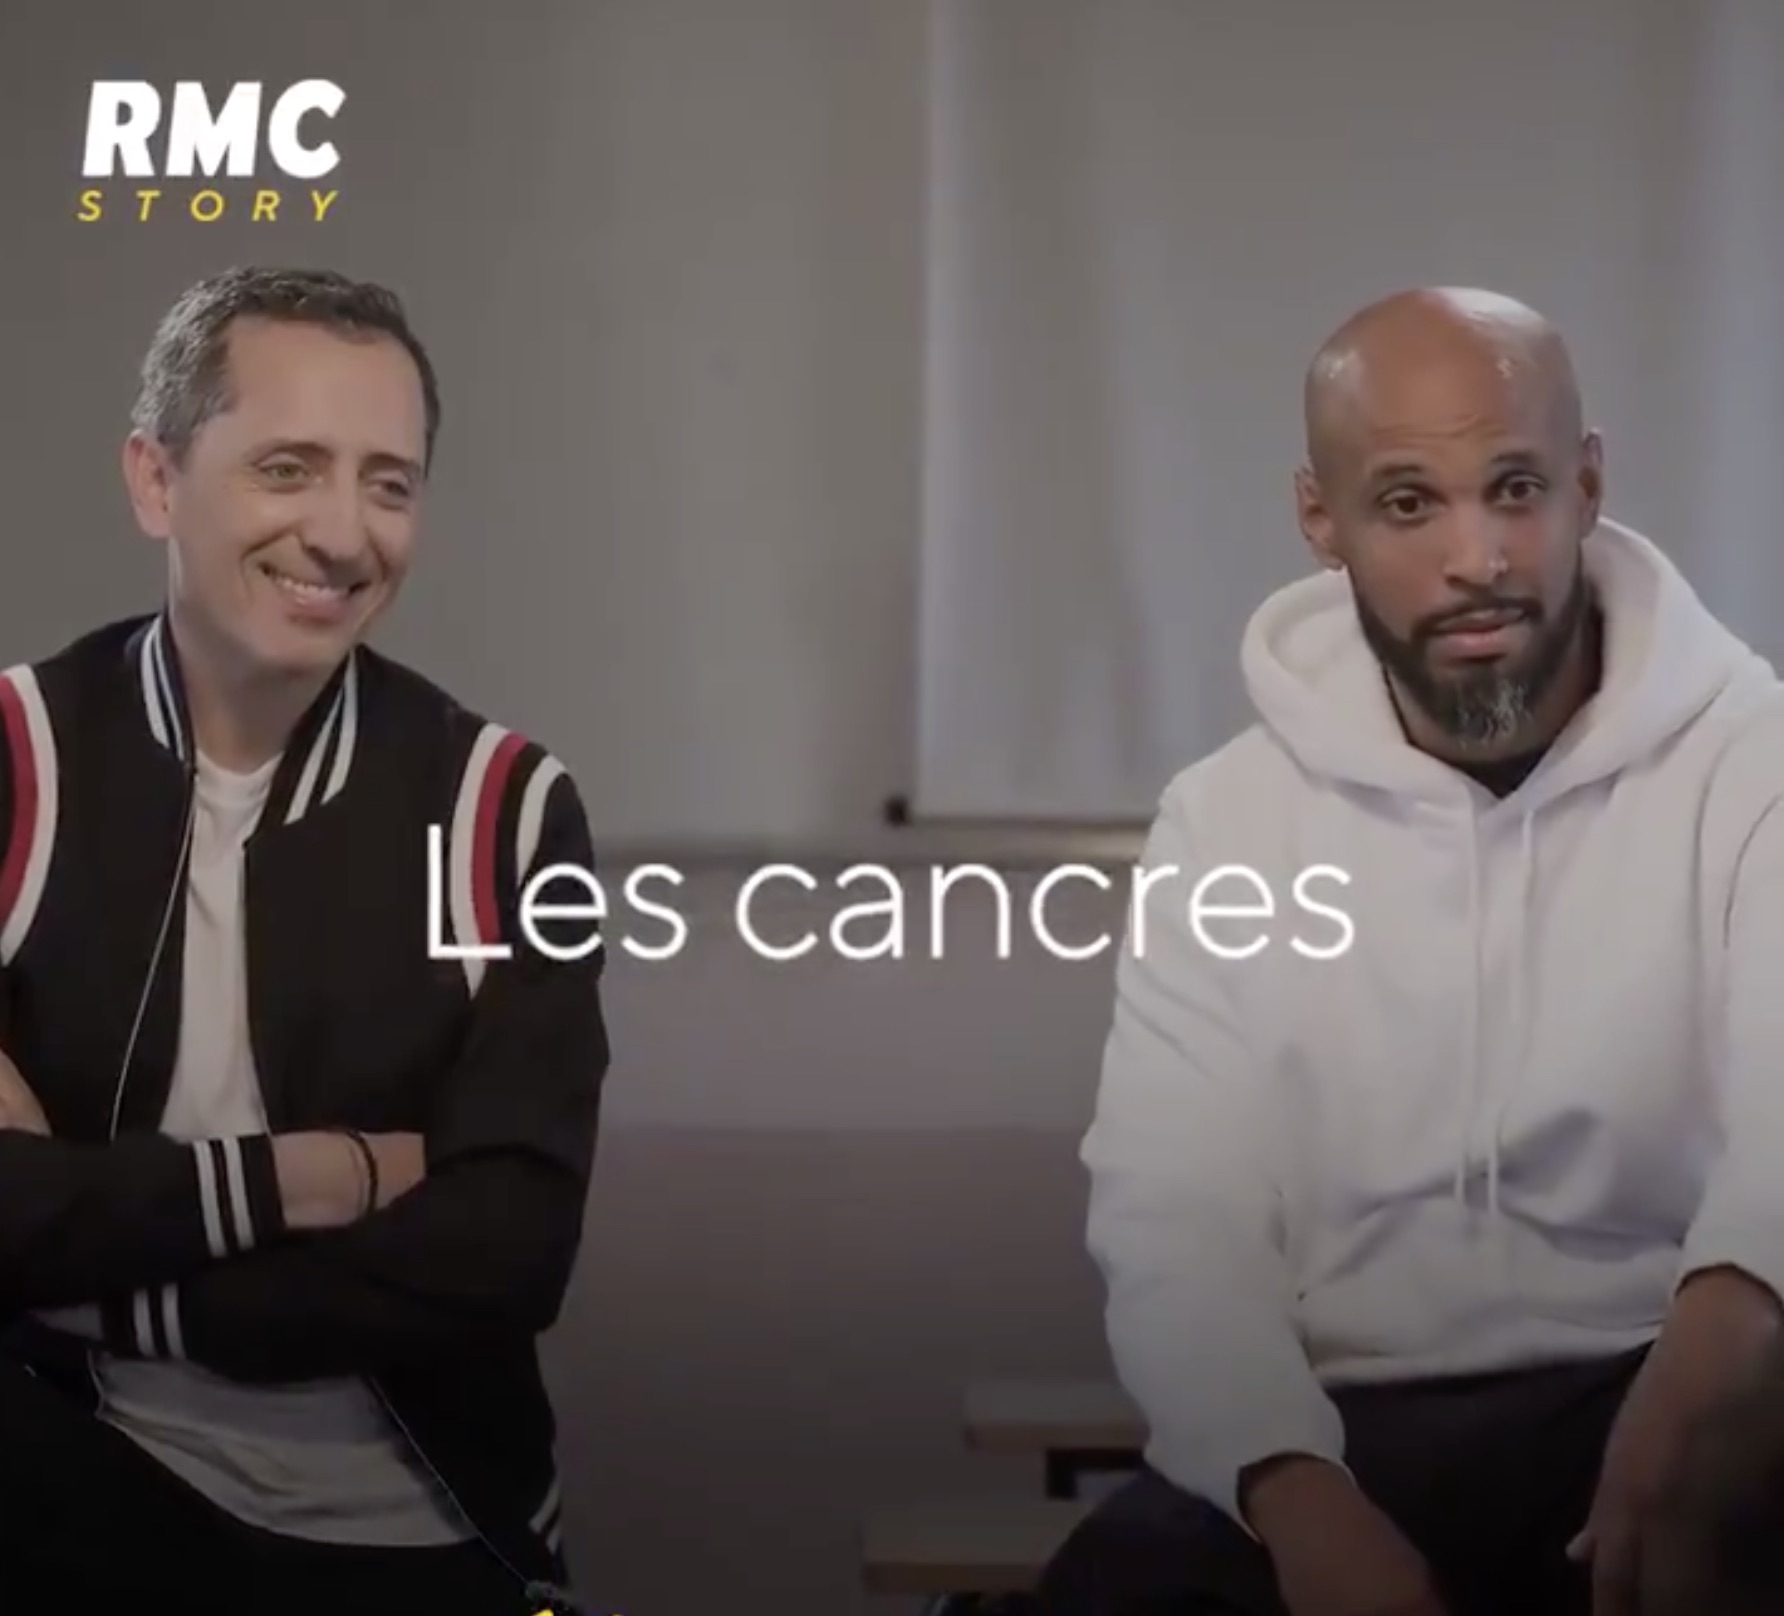 Les cancres - RMC Story